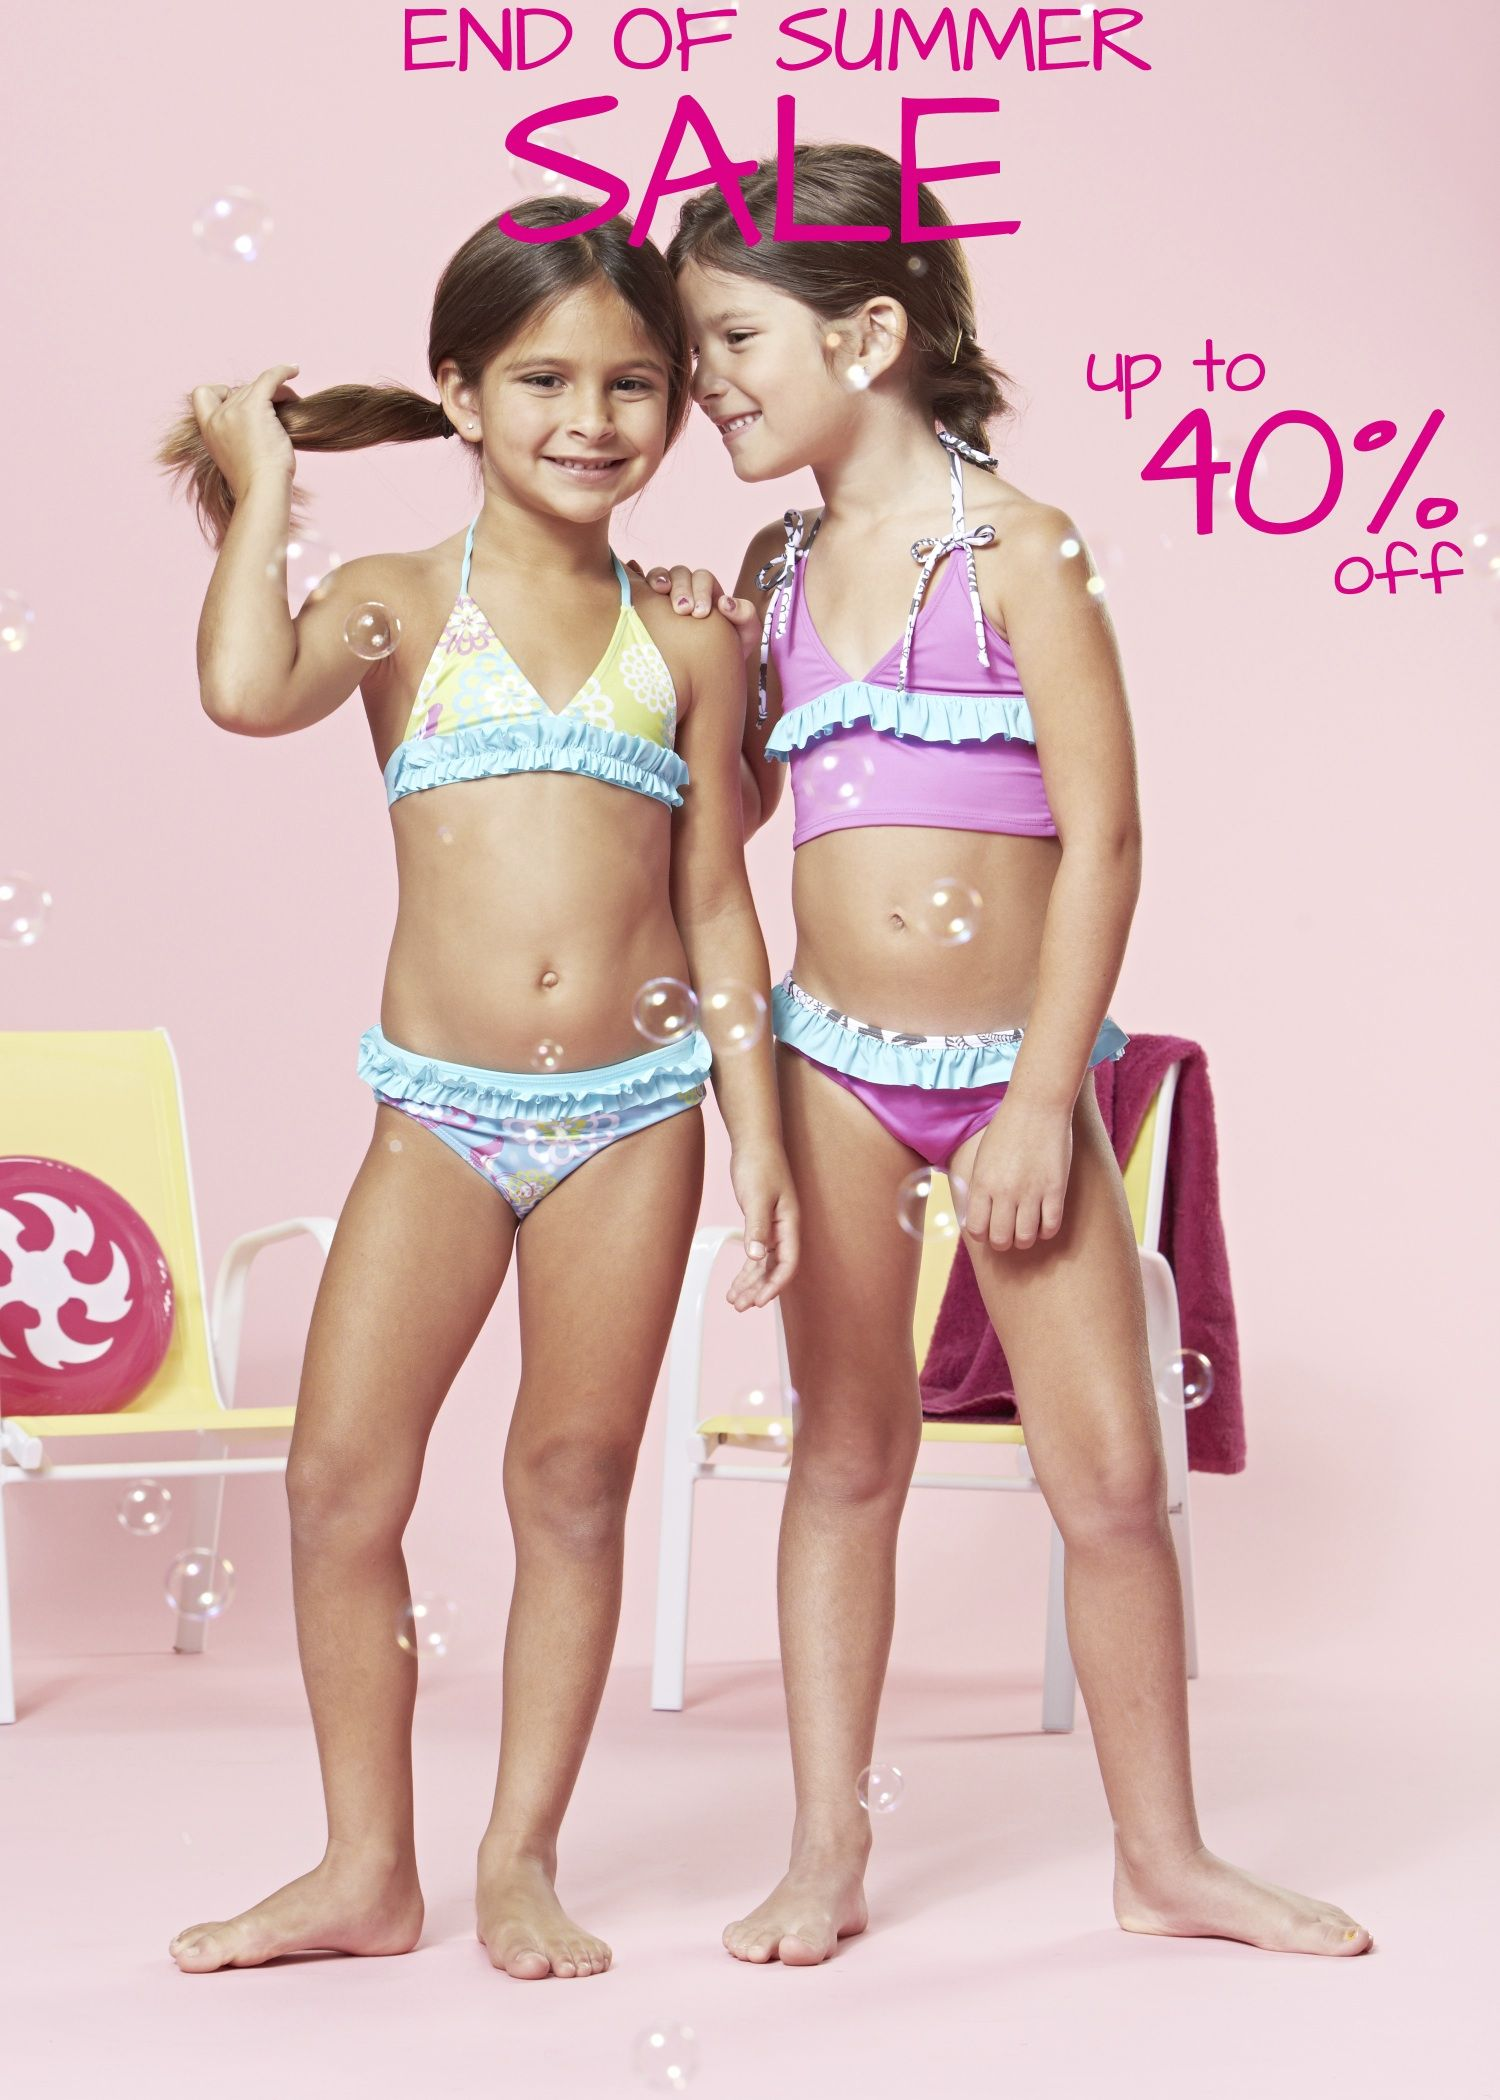 9b47729135876 SALE - Up to 40% off - shop www.sweetlolakids.com for adorable childrens  swimwear!